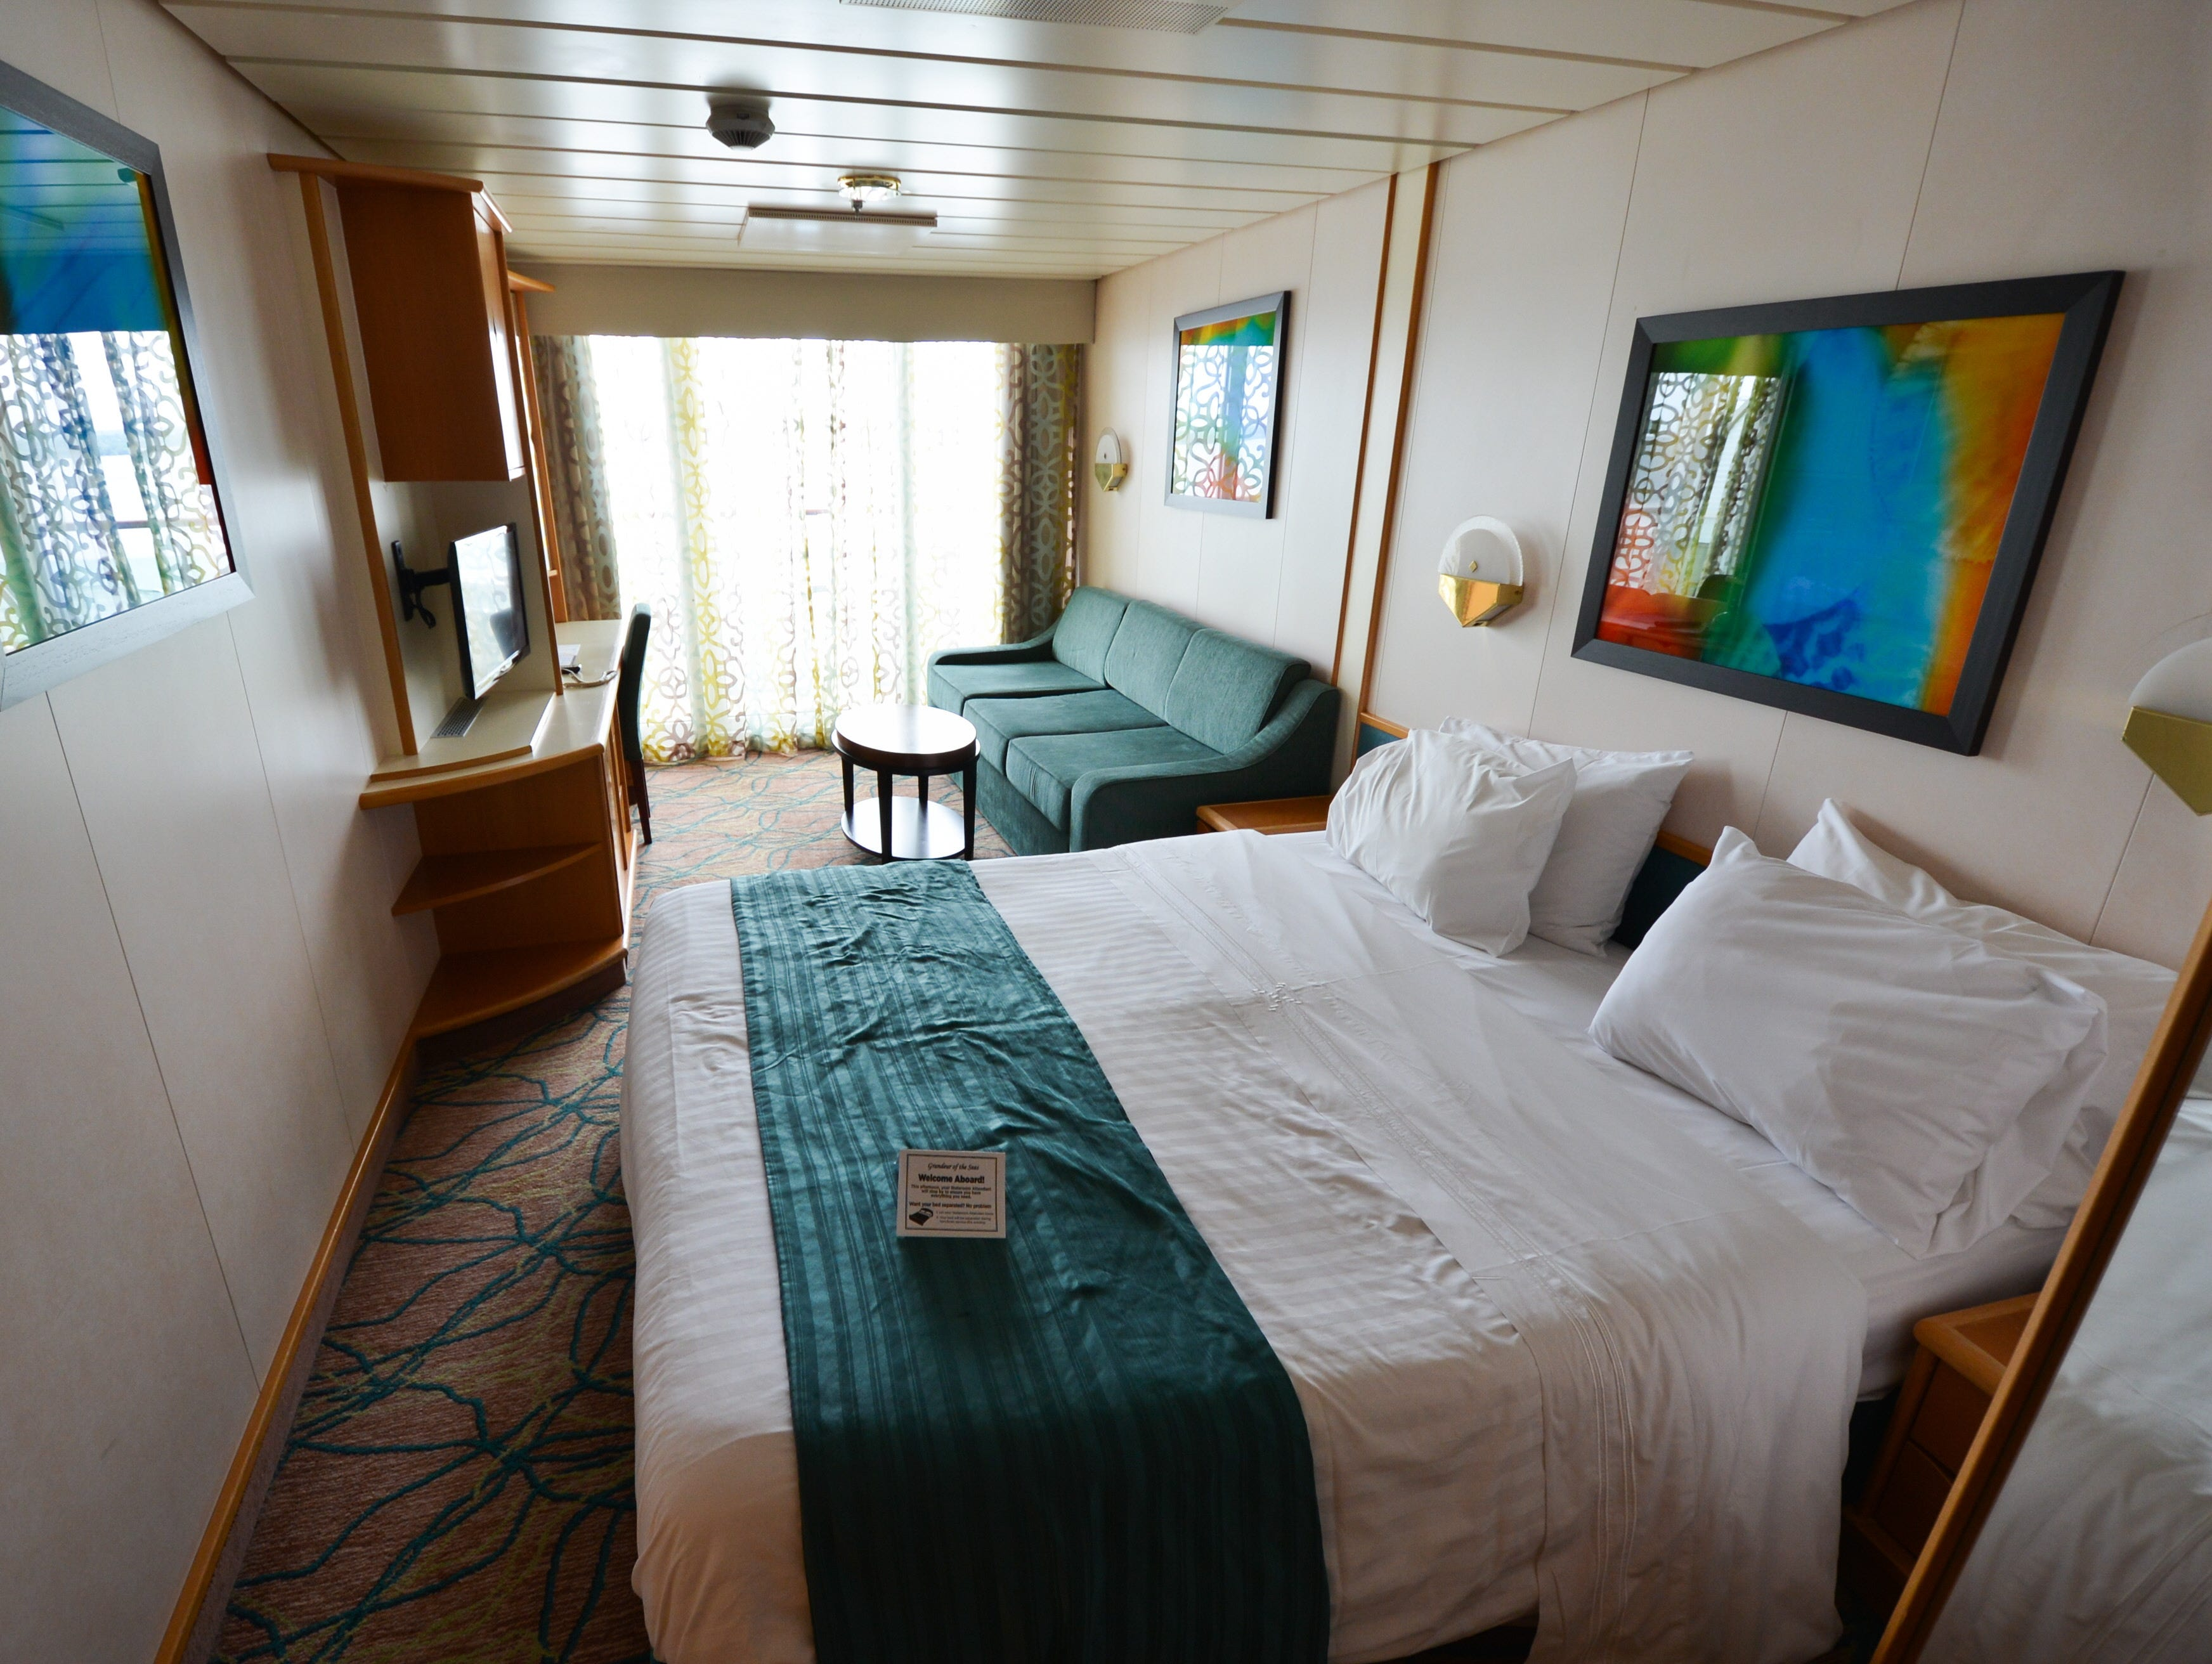 Of 996 cabins on Grandeur of the Seas, 597 are Ocean View cabins like the one shown here.